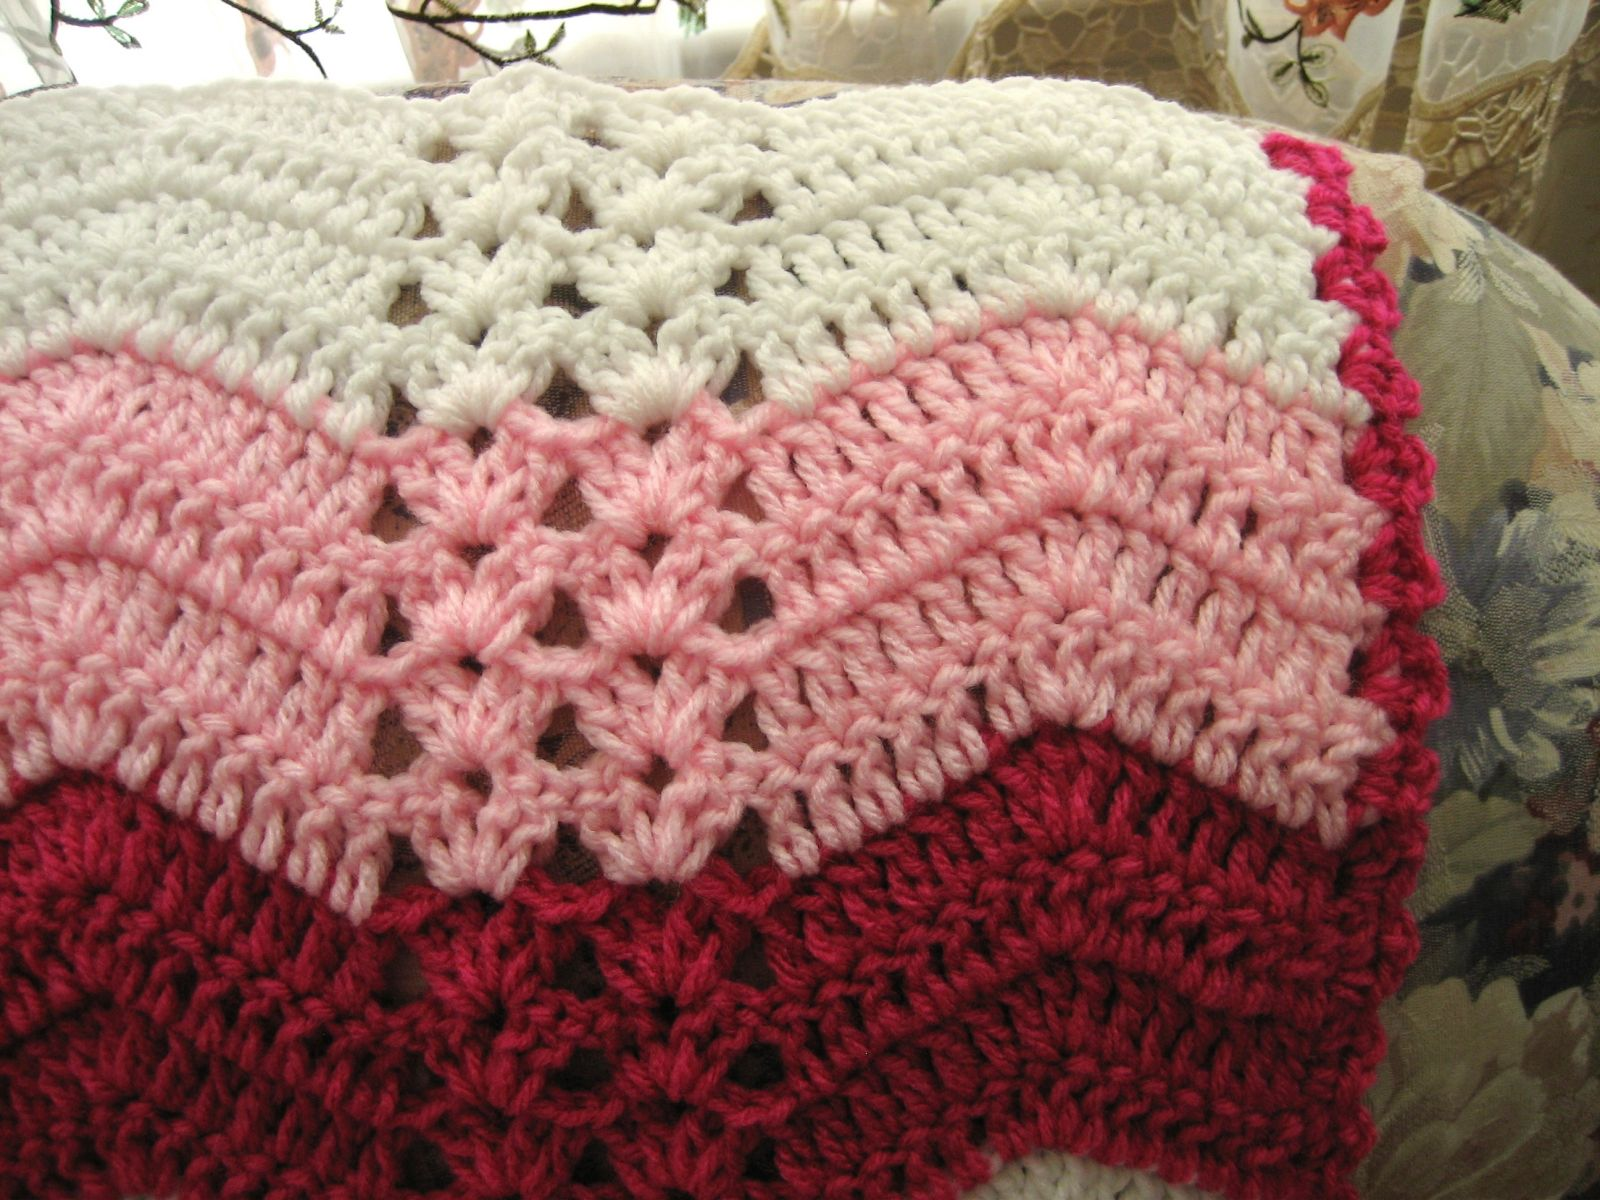 Crochet Patterns For Afghans : Afghans Free Crochet Afghan Patterns Afghan Hearts Afghan Angel Afghan ...